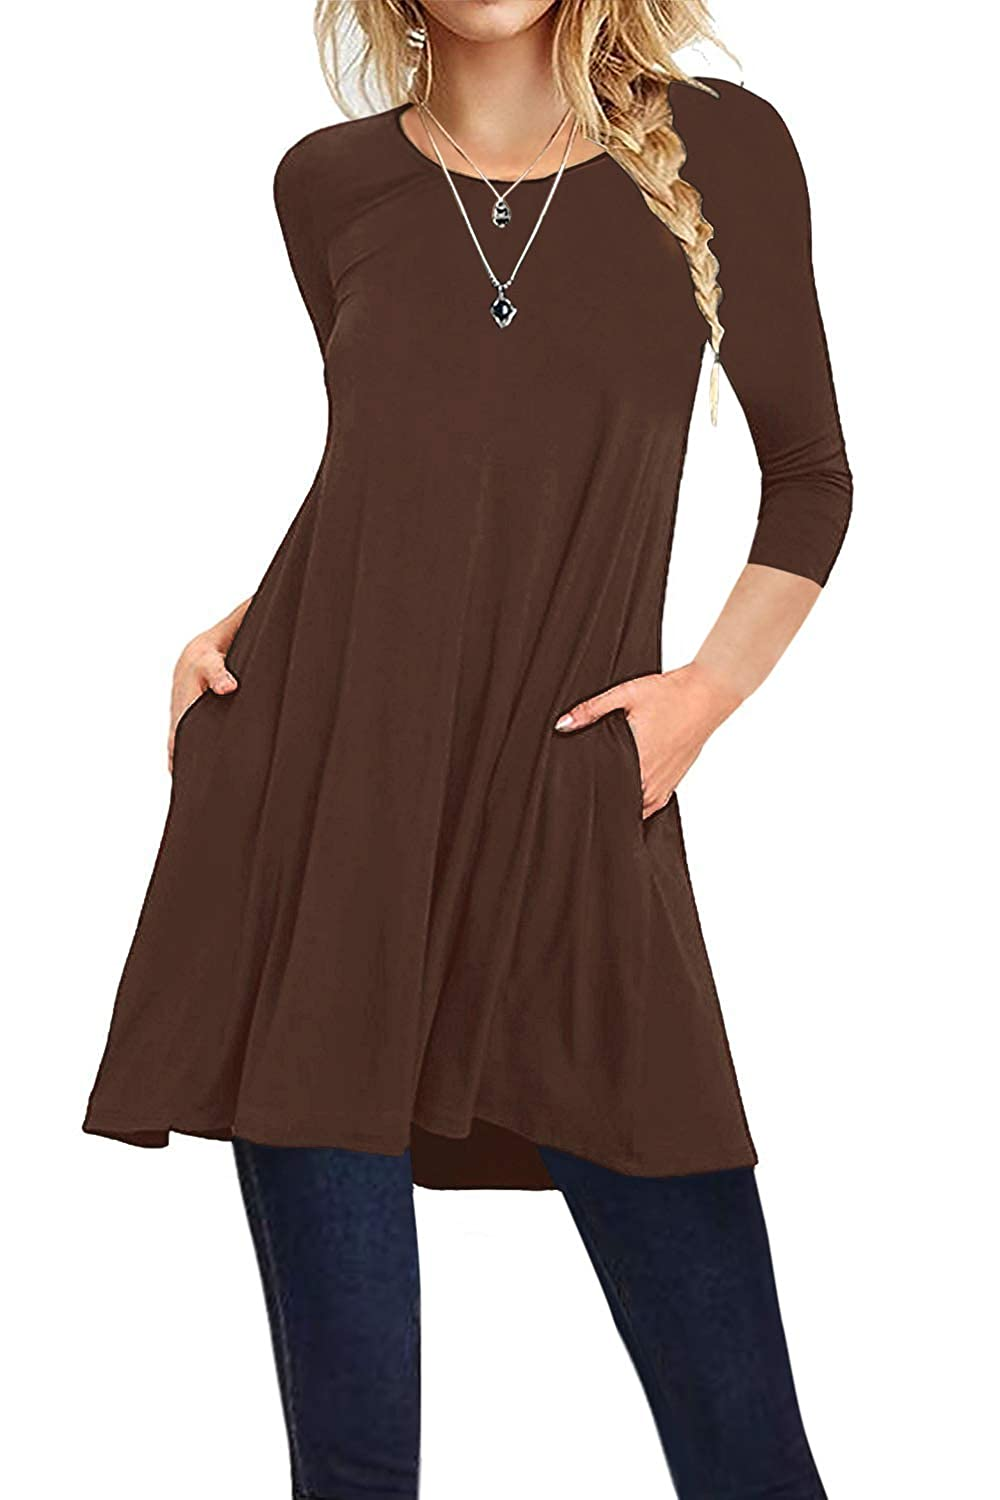 I2CRAZY Women's Tunics Tops Casual Loose 3/4 Sleeves Round Neck T Shirt Blouses with Pockets IC-916